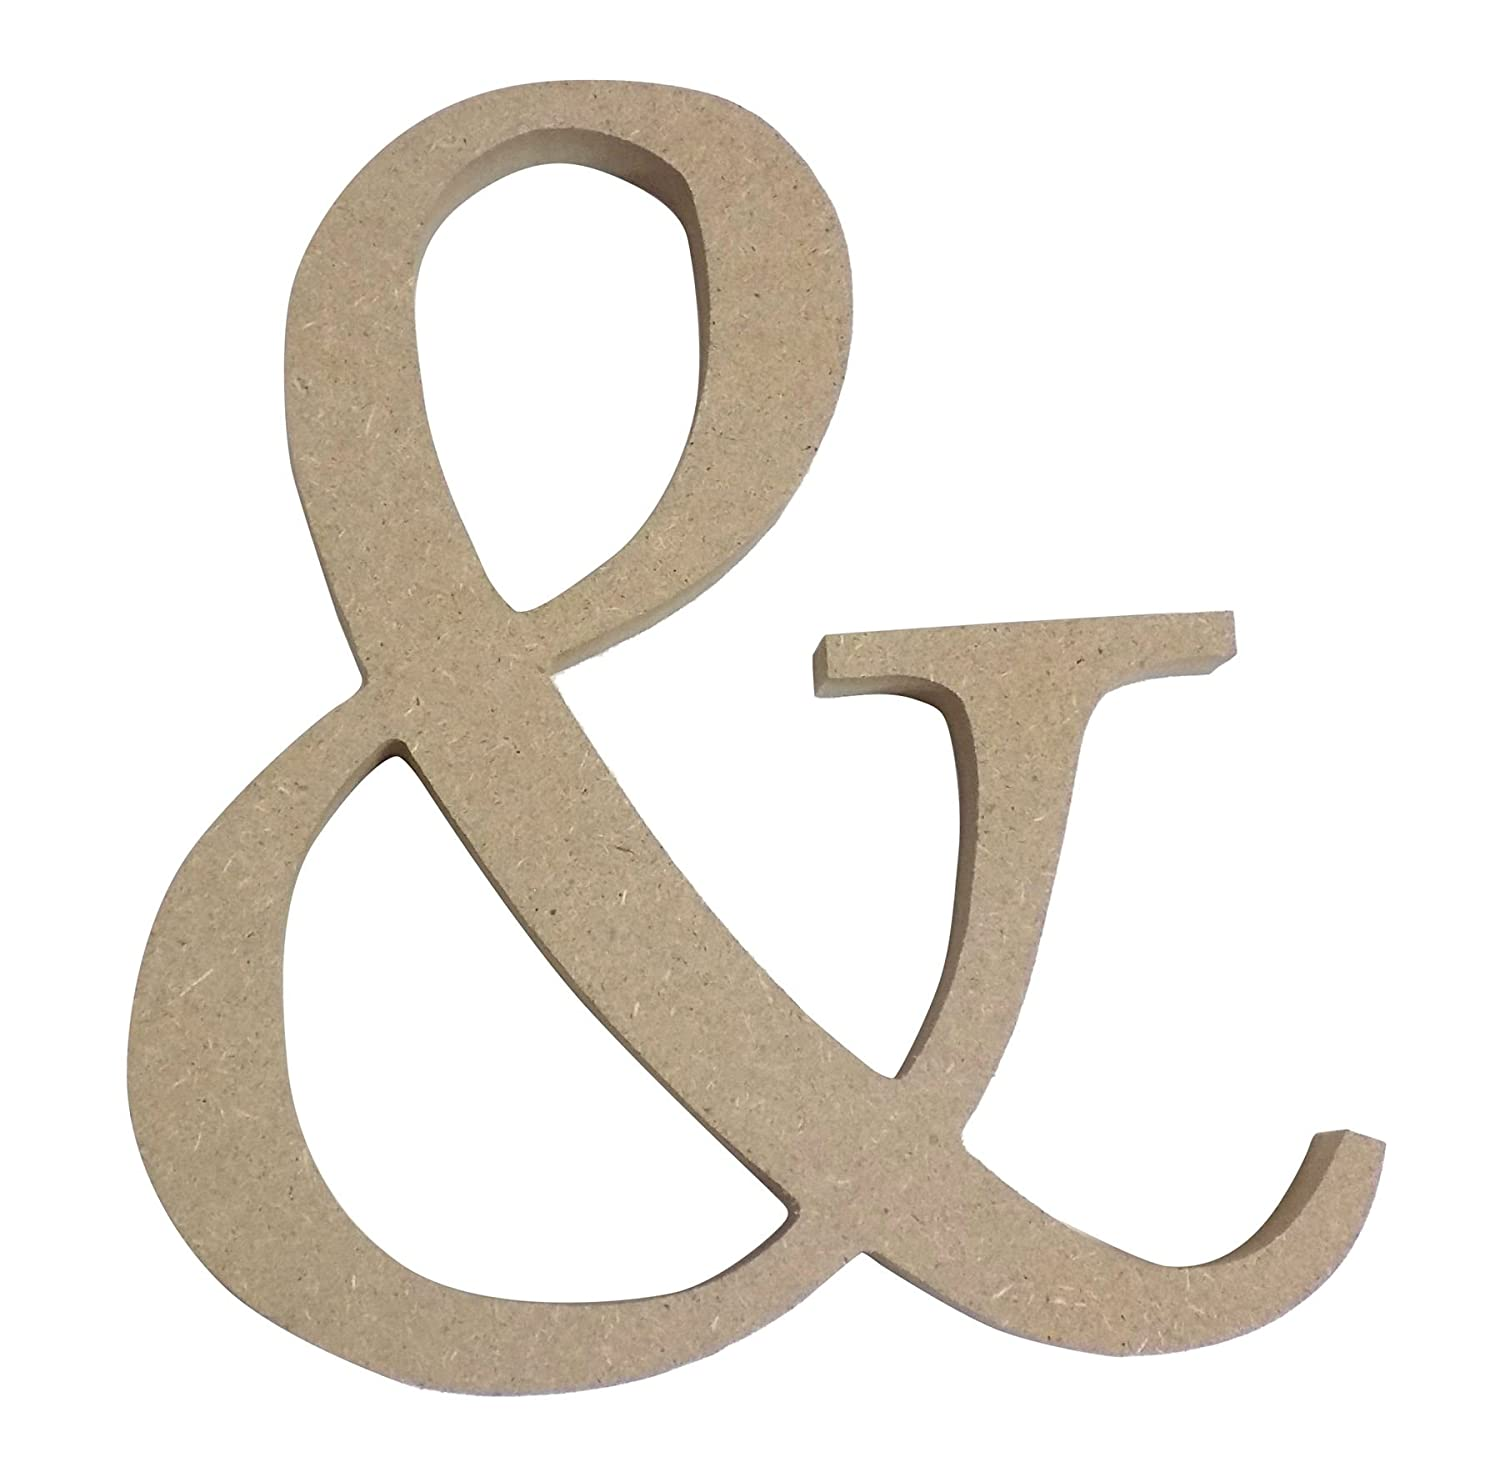 BEIGE FREE STANDING AMPERSAND (&) SYMBOL WOODEN MDF H13CM X W12.5CM X D2CM Wooden Numbers